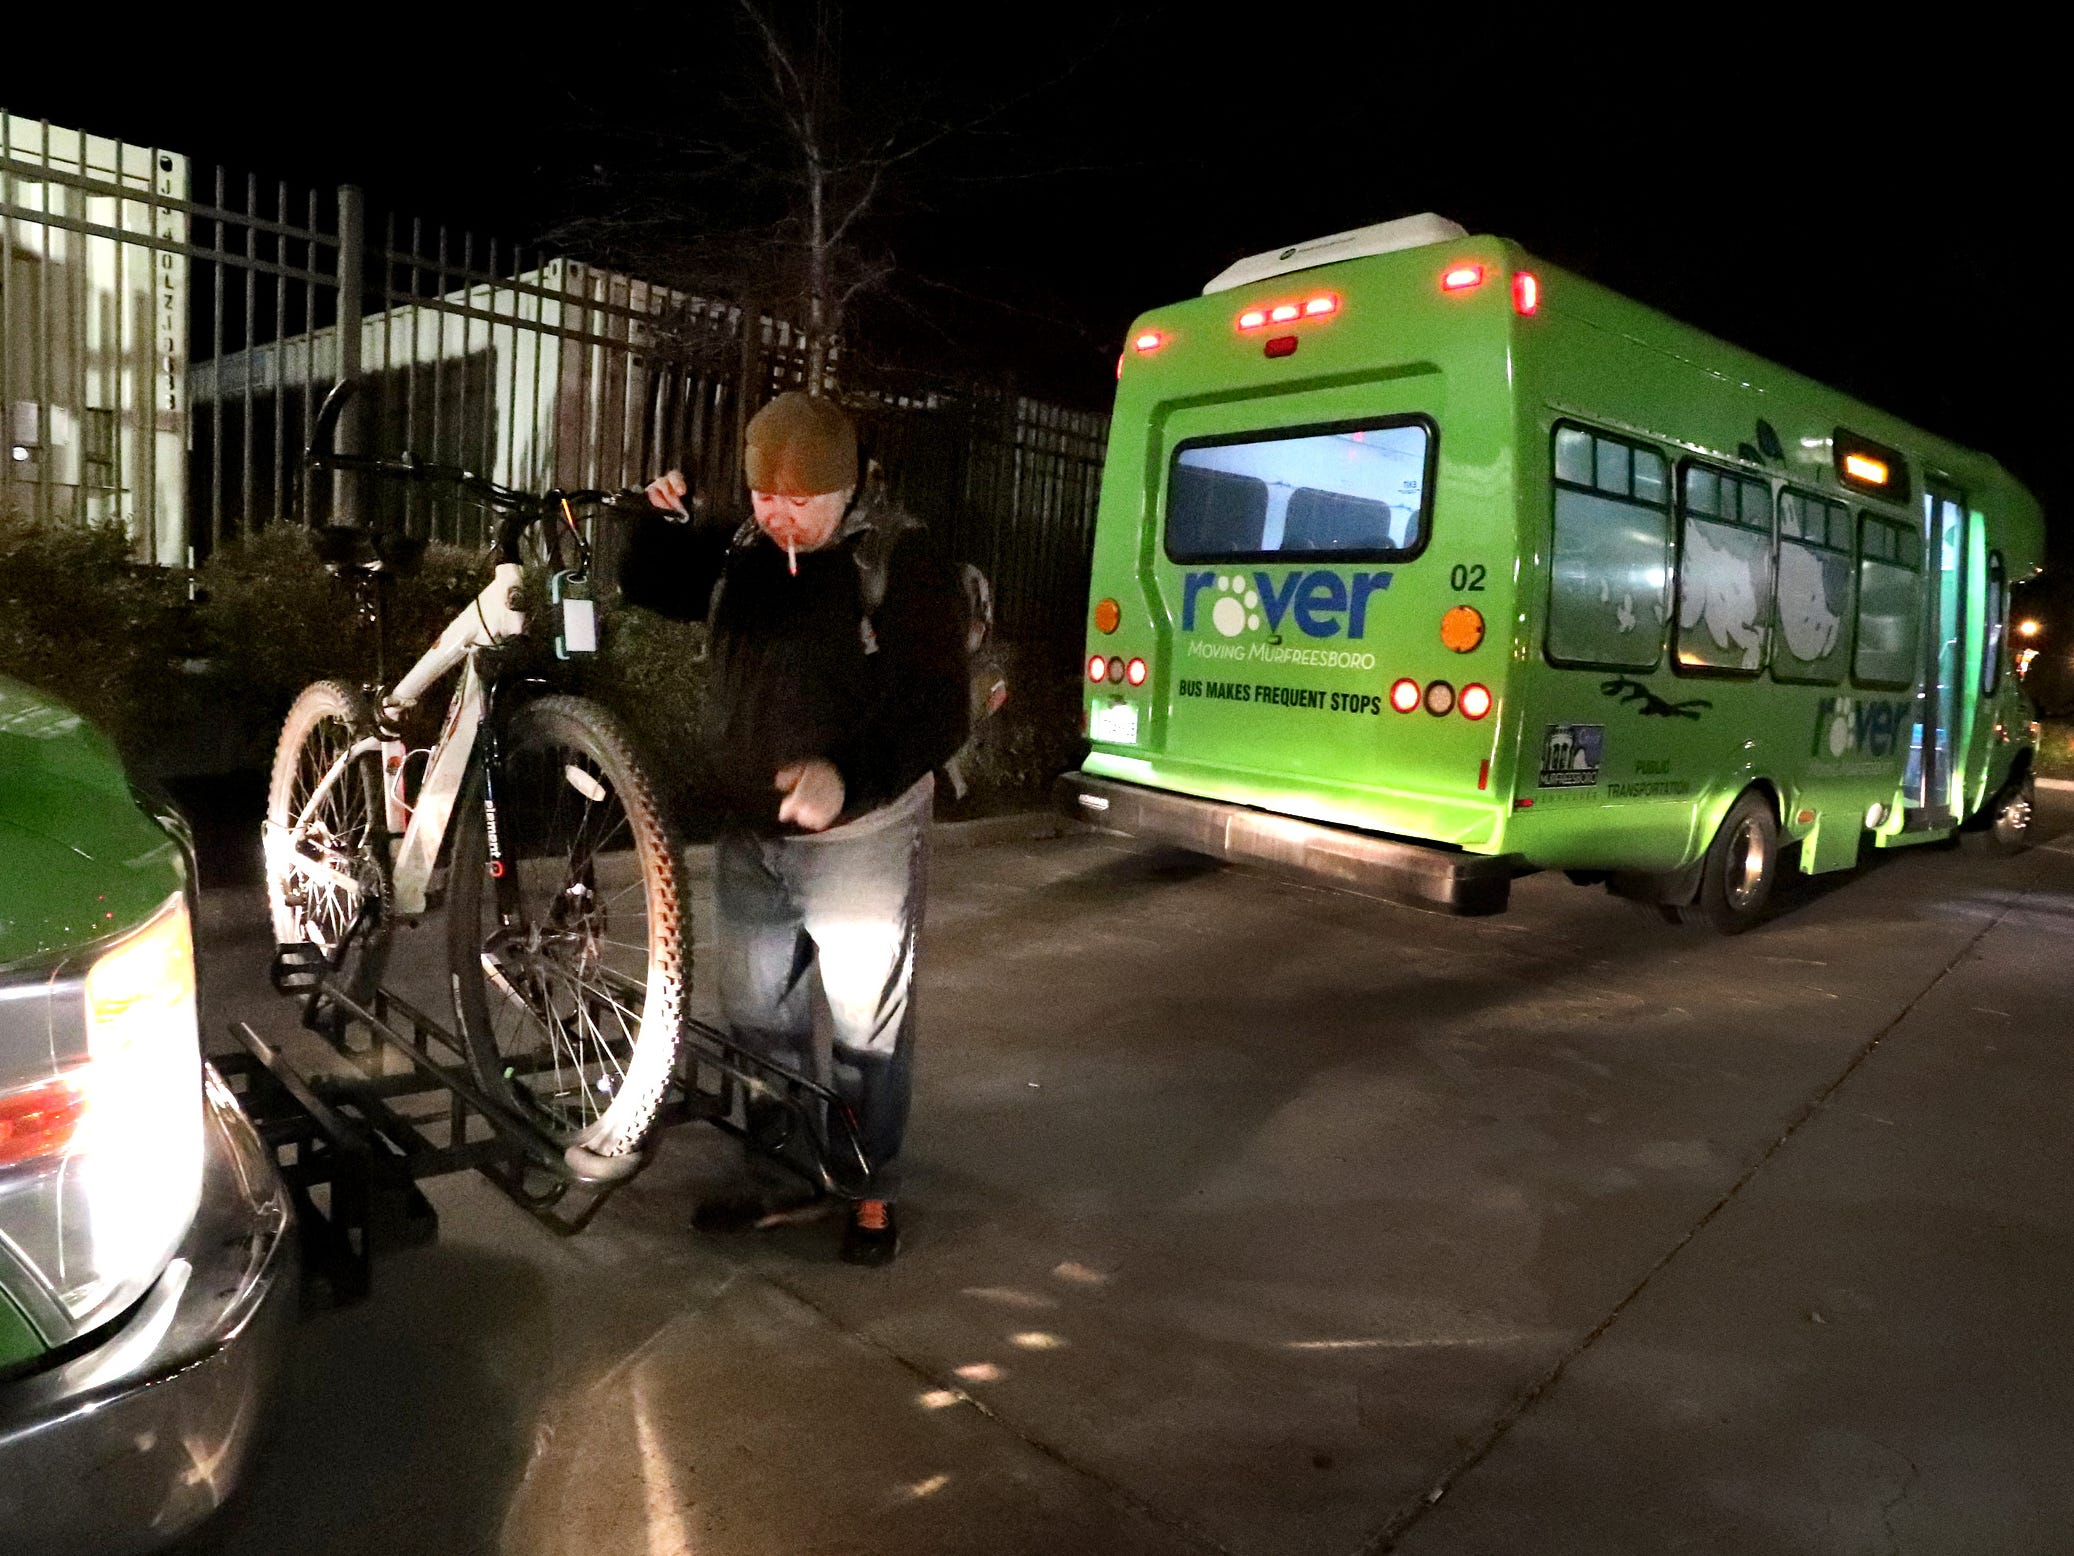 Daniel Zienkiewicz places his bike on one of the front two bike rakes in front of his Rover bus. on Wednesday, March 18, 2019, in Murfreesboro, Tenn.., before boarding the bus. Zienkiewicz says that if there are more than 2 people with bikes the others must wait for the next bus.